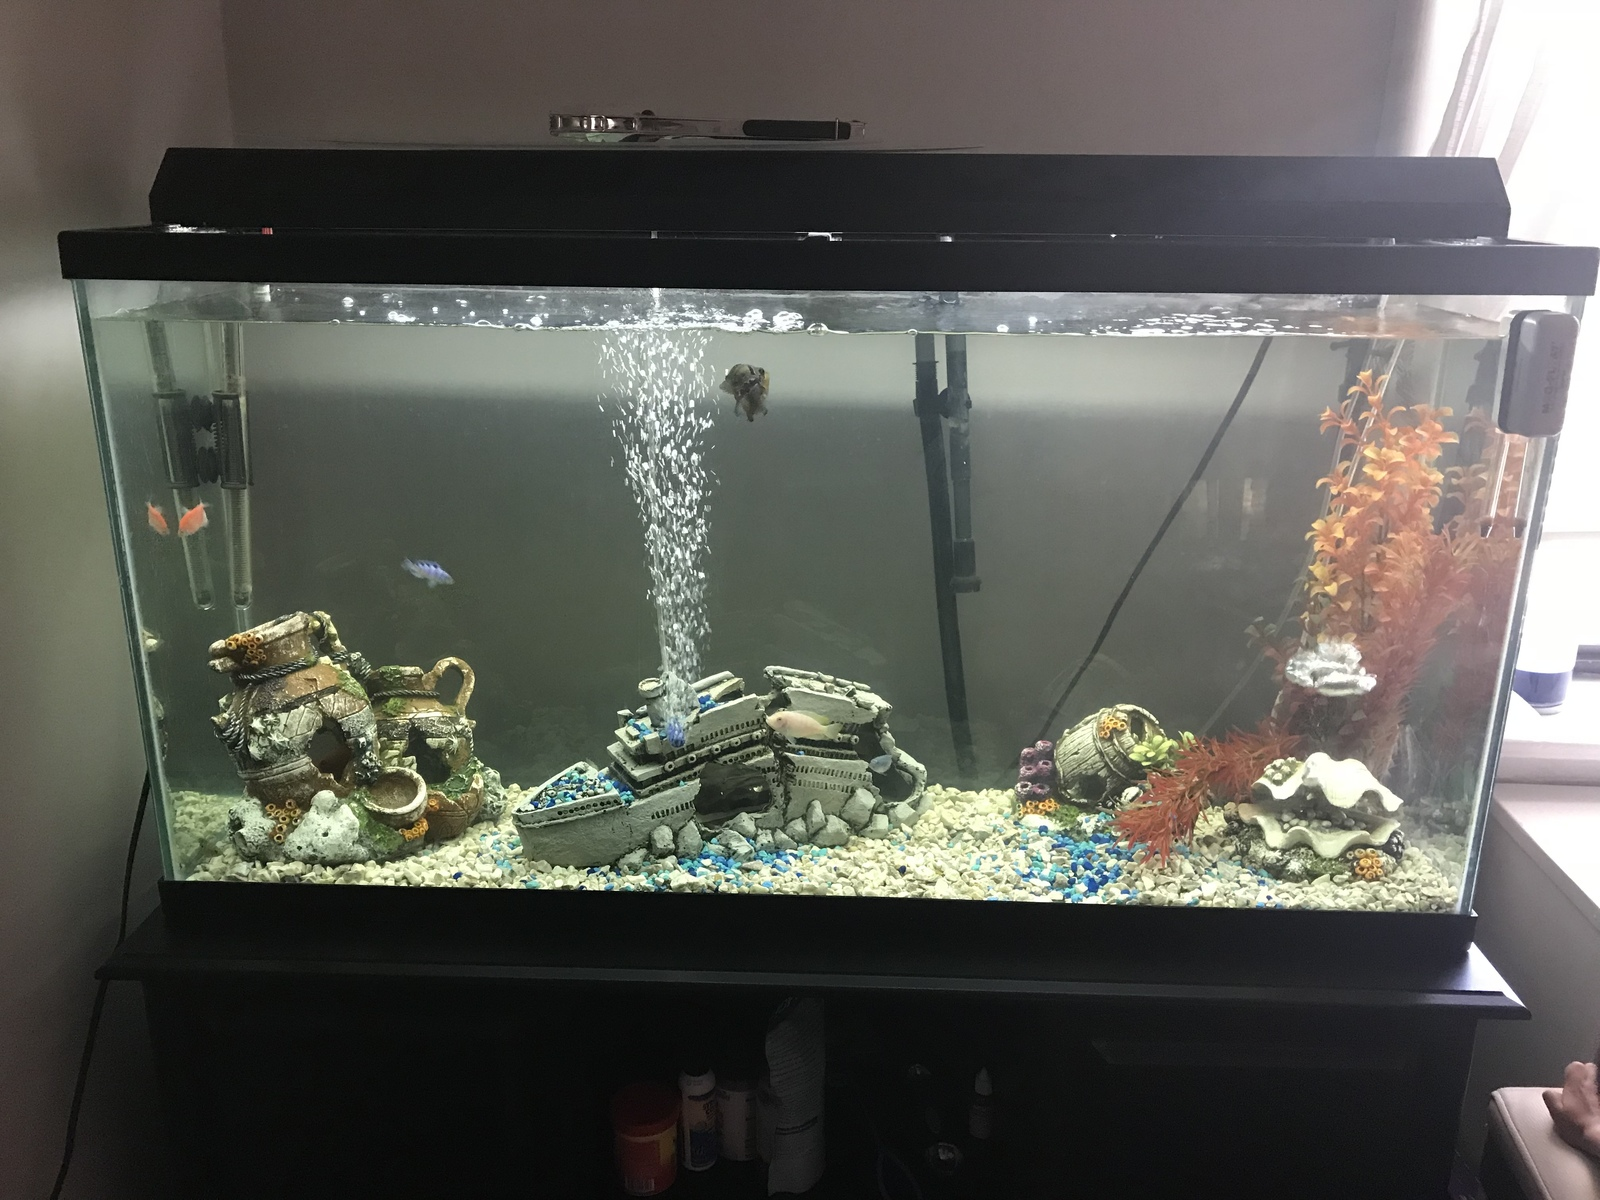 My new aquarium | by H Samuel YILDIRIM